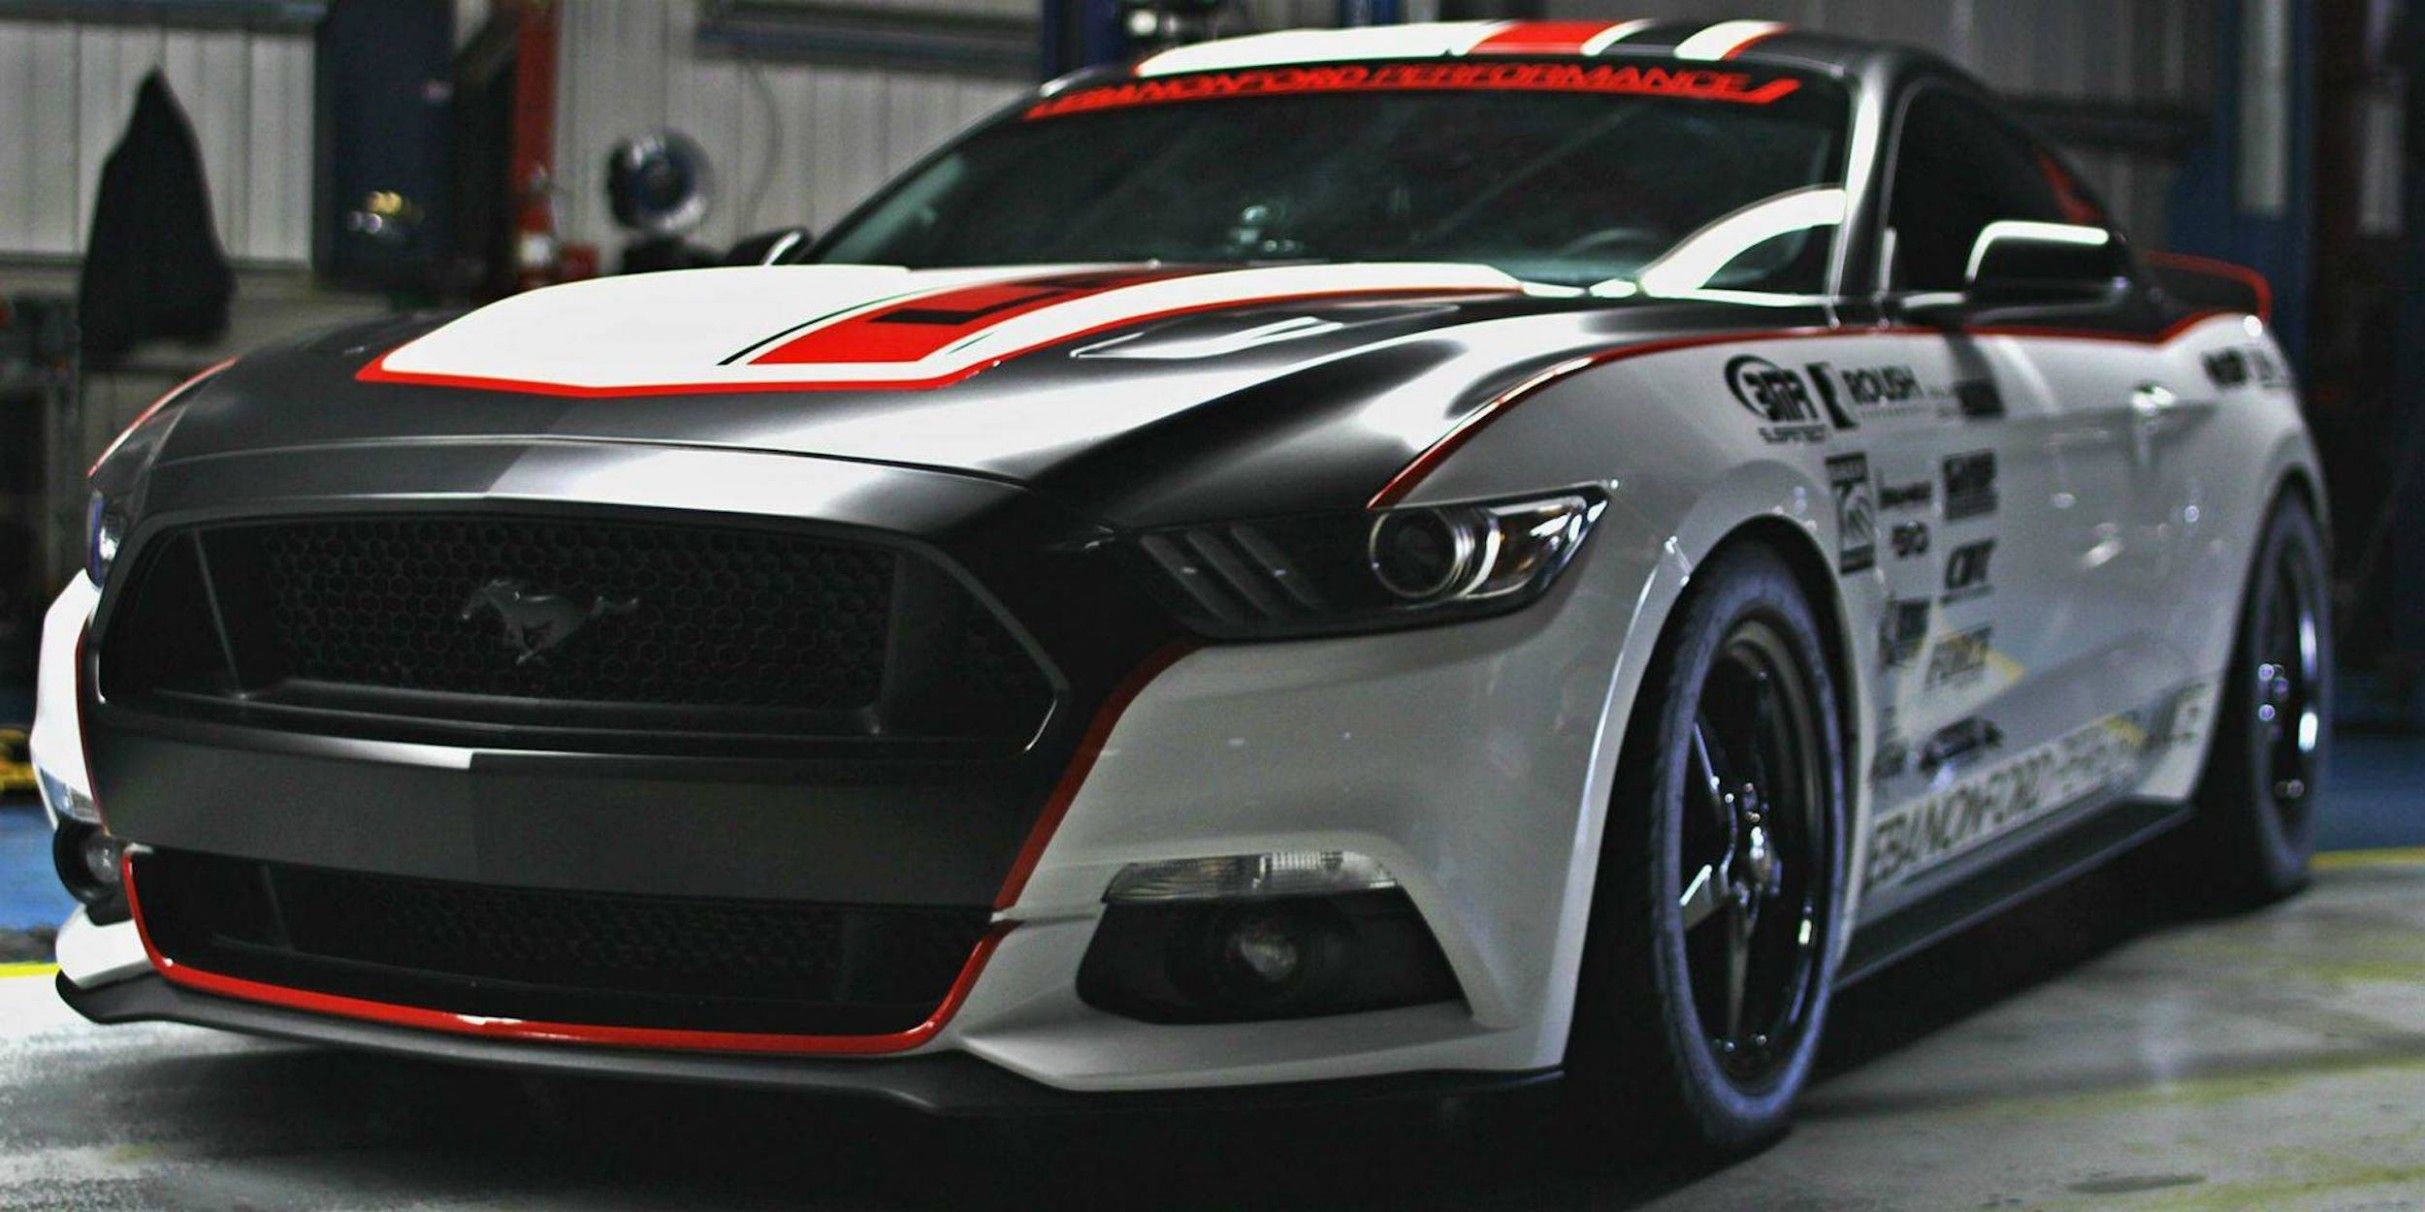 2020 Ford Mustang Quarter Mile History 2020 Ford Mustang Quarter Mile Mystery Solved Even Admitting Ford Apparent The Shelby Ford Mustang Mustang Ford